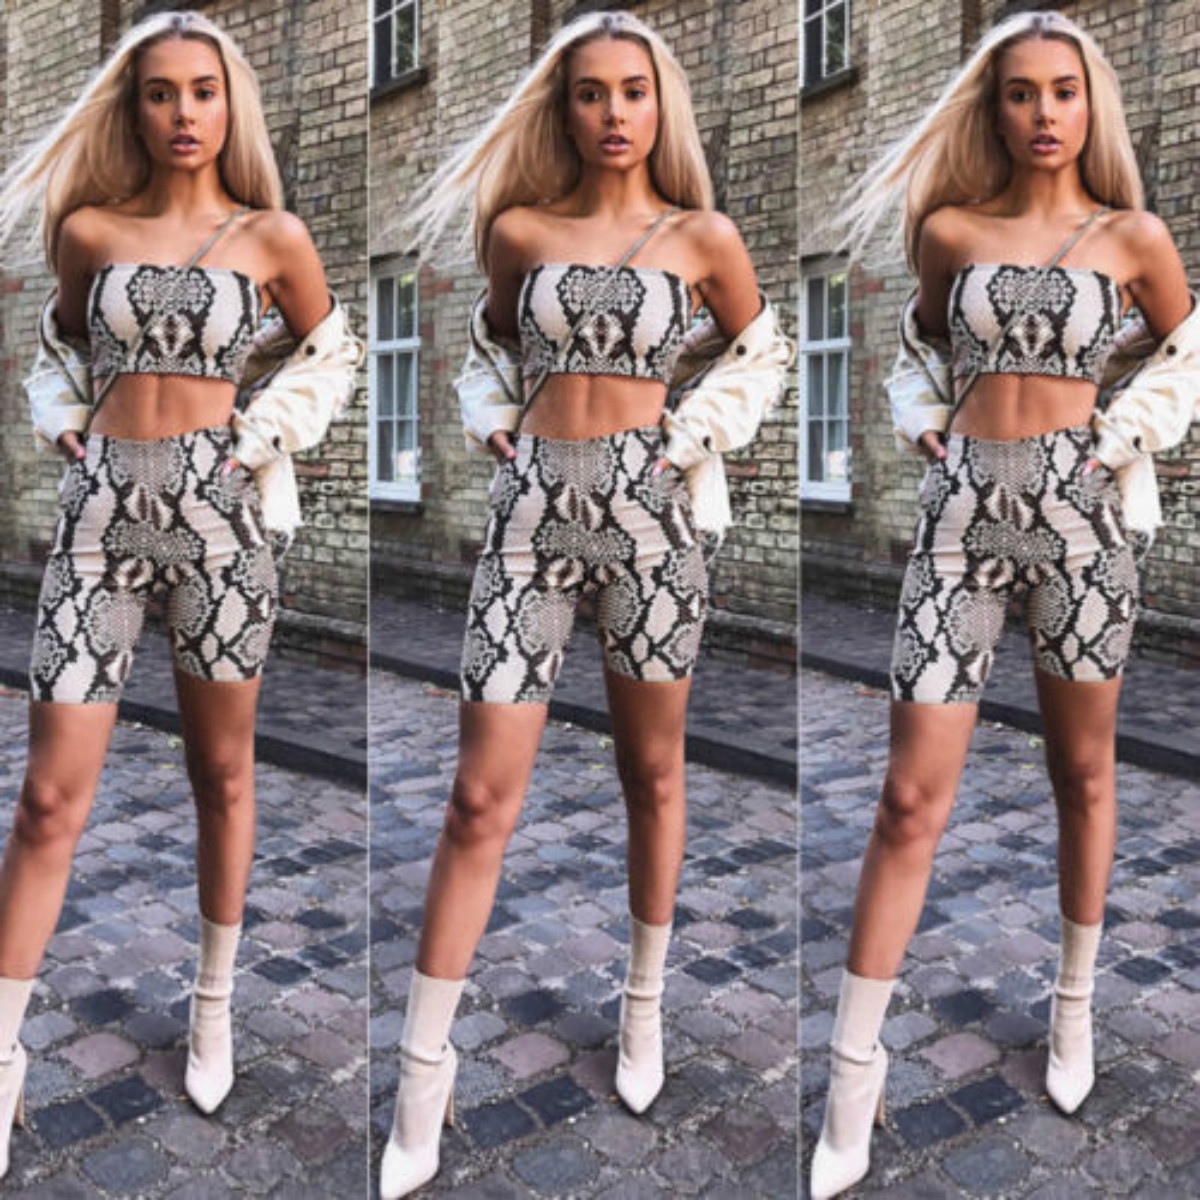 9dabac0da7baa Women 2 Pieces Bodycon Crop Strapless Sleeveless Sexy Snakeskin Skinny Tube  Top+Shorts Summer Beach Set Outfits-in Women's Sets from Women's Clothing  ...